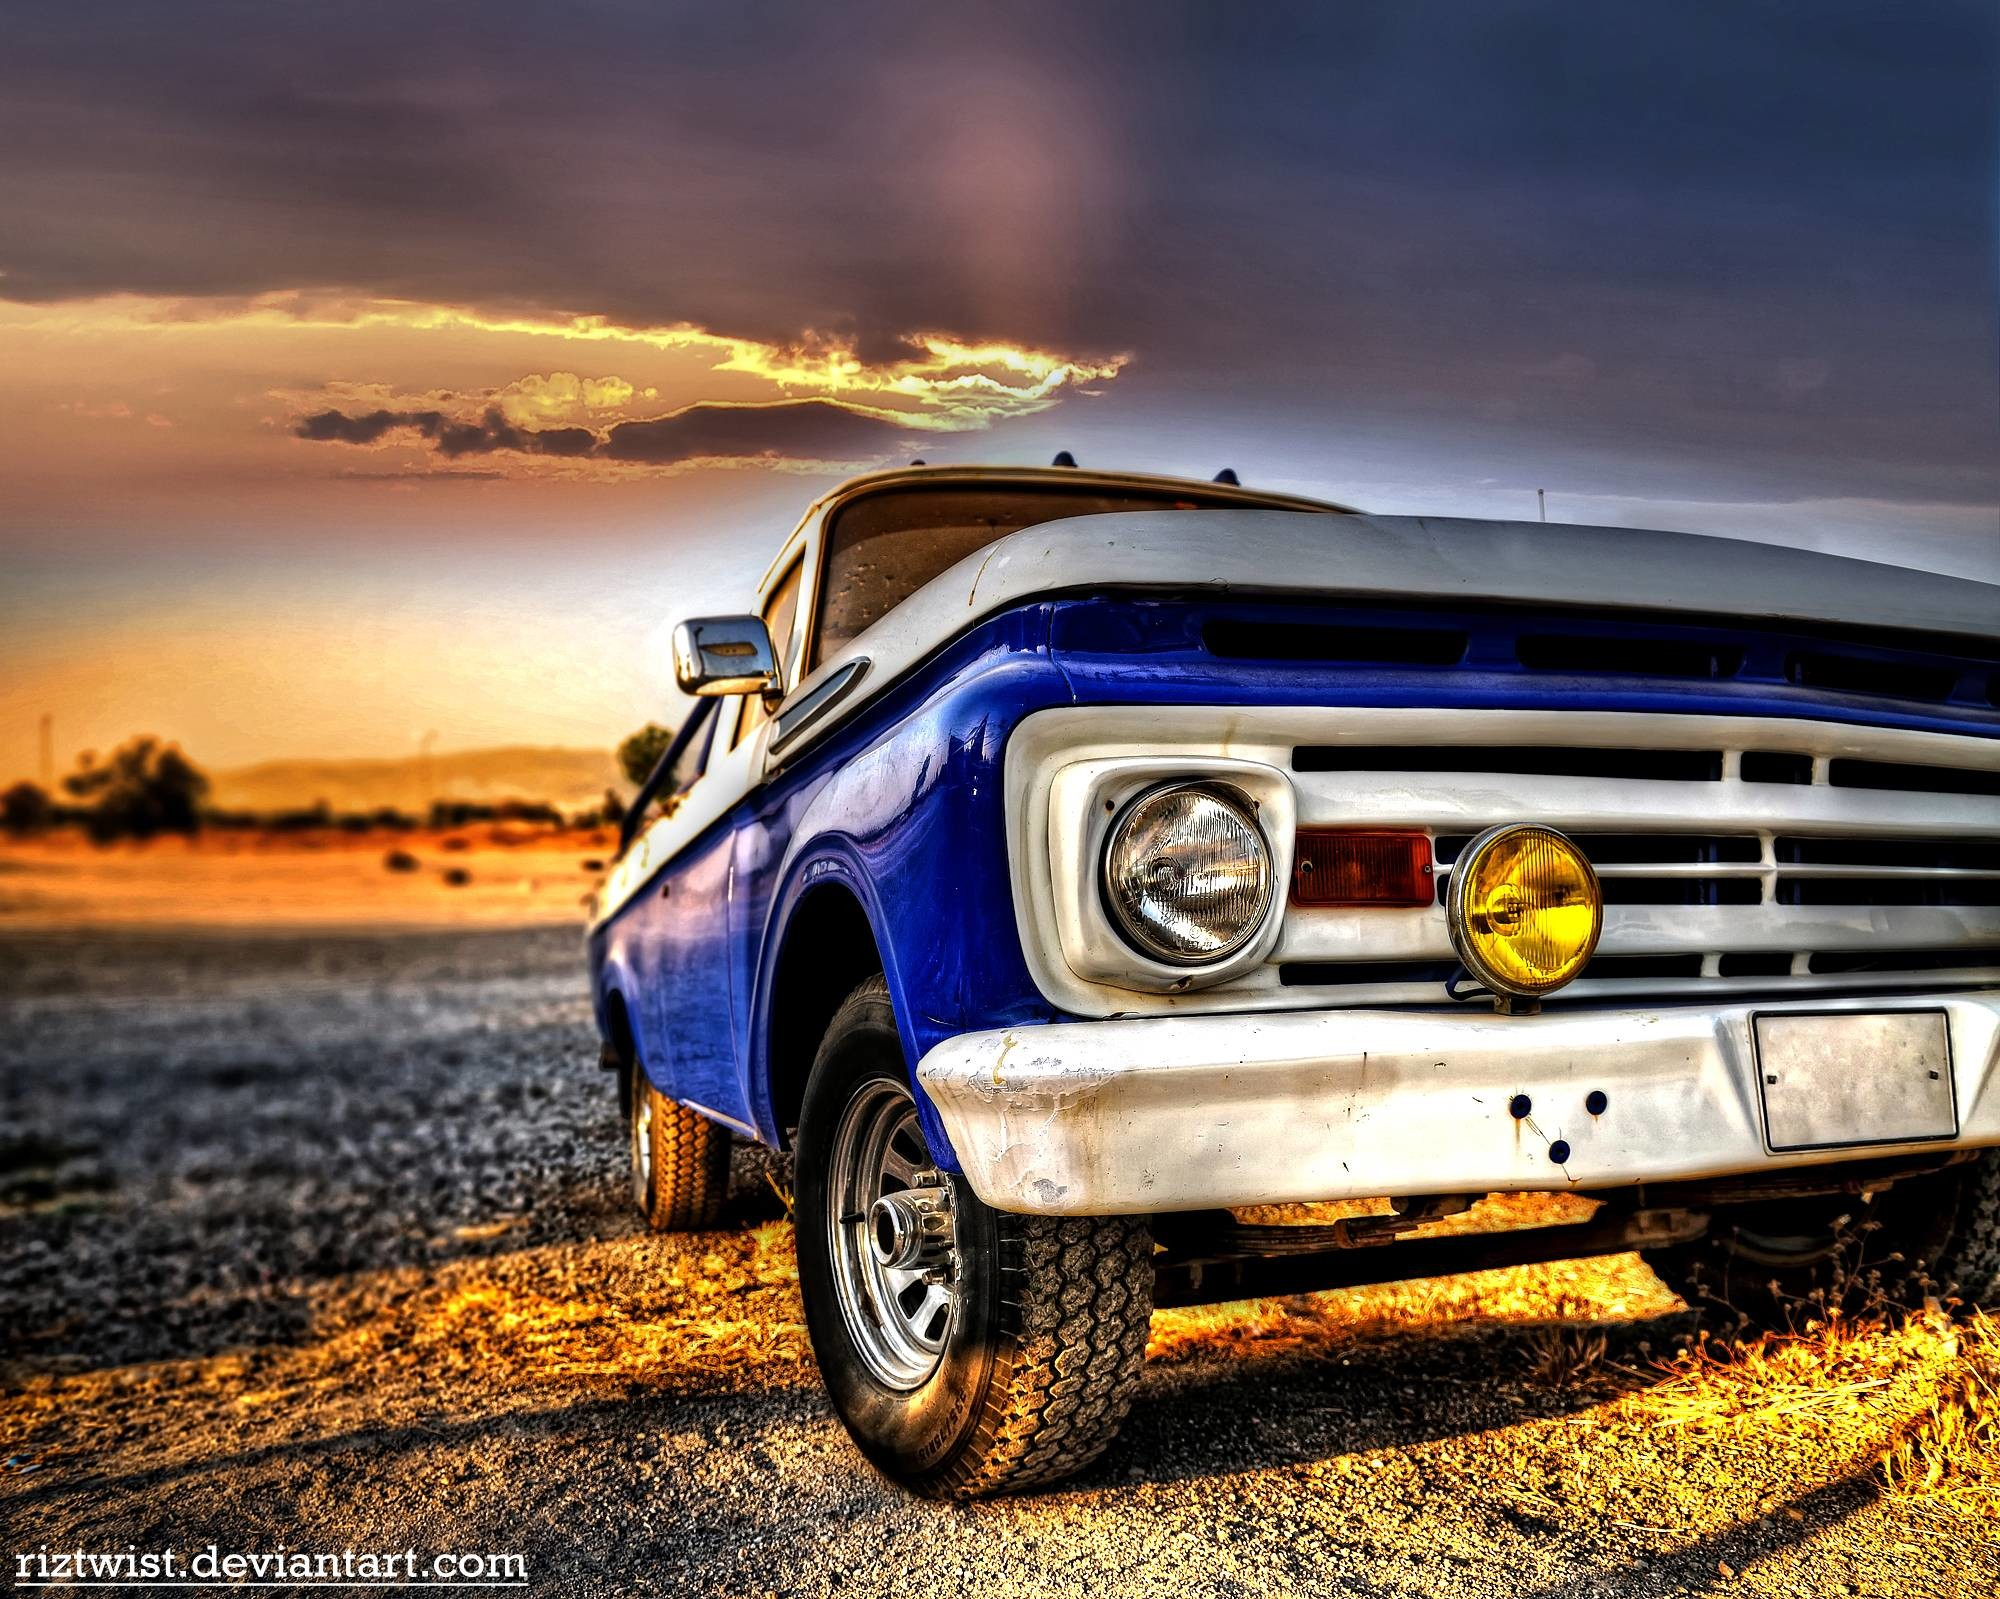 Pickup Truck Wallpapers | HD Wallpapers Base